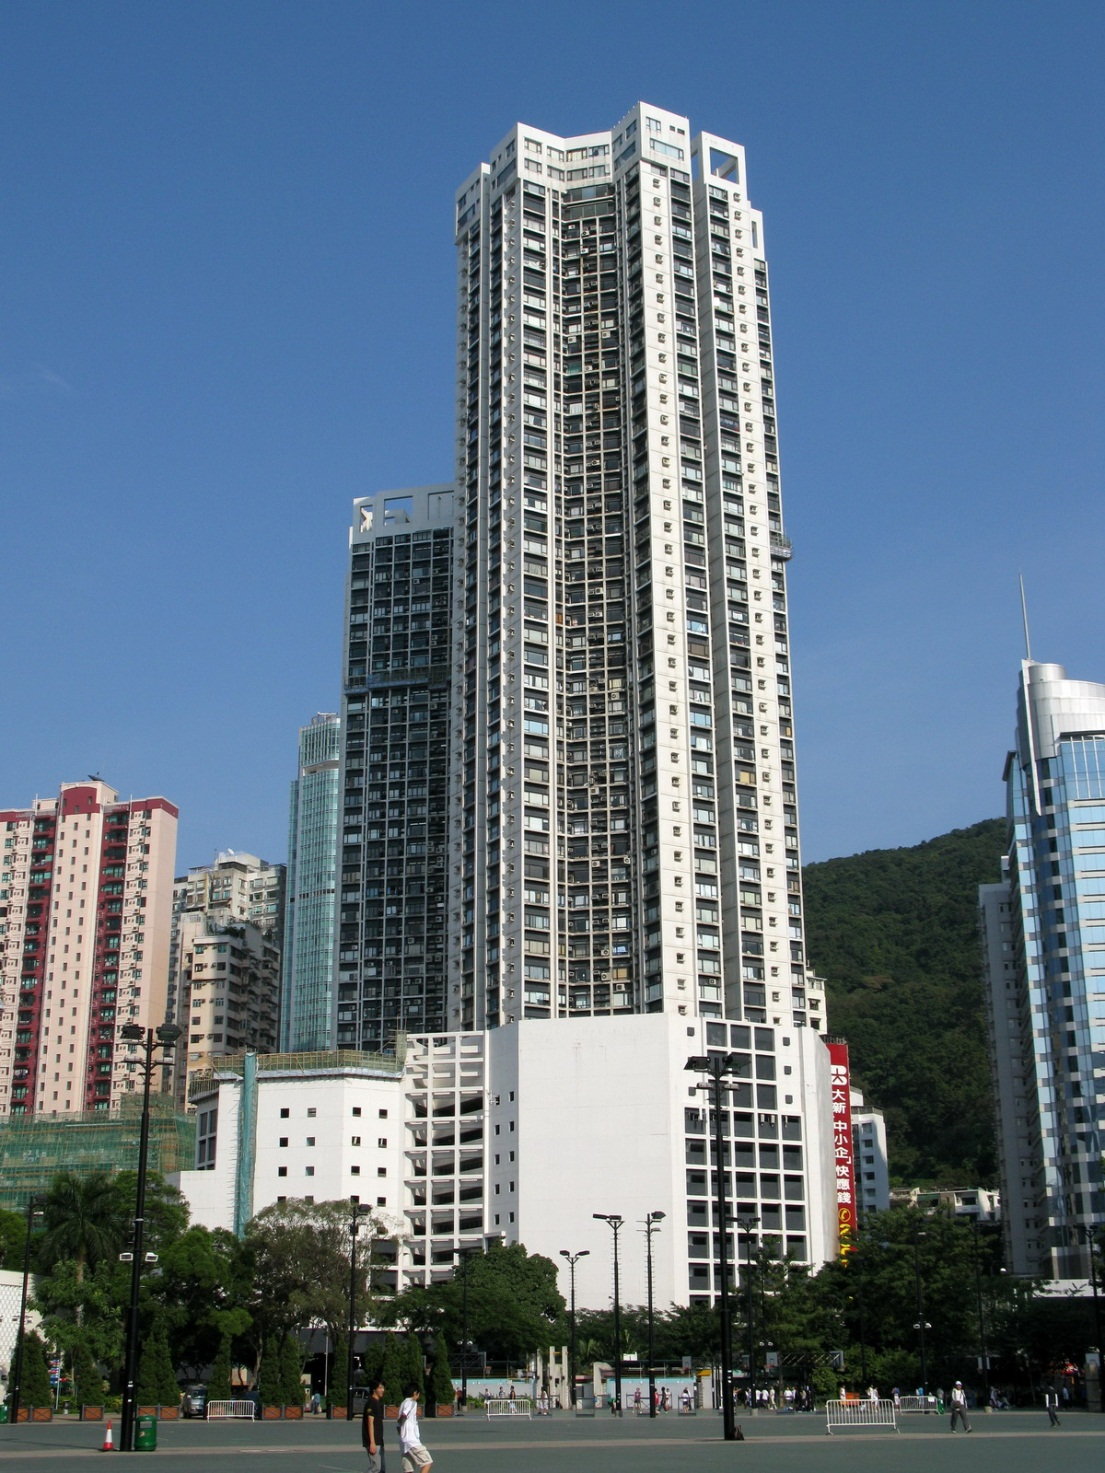 http://upload.wikimedia.org/wikipedia/commons/0/00/Park_Towers.jpg